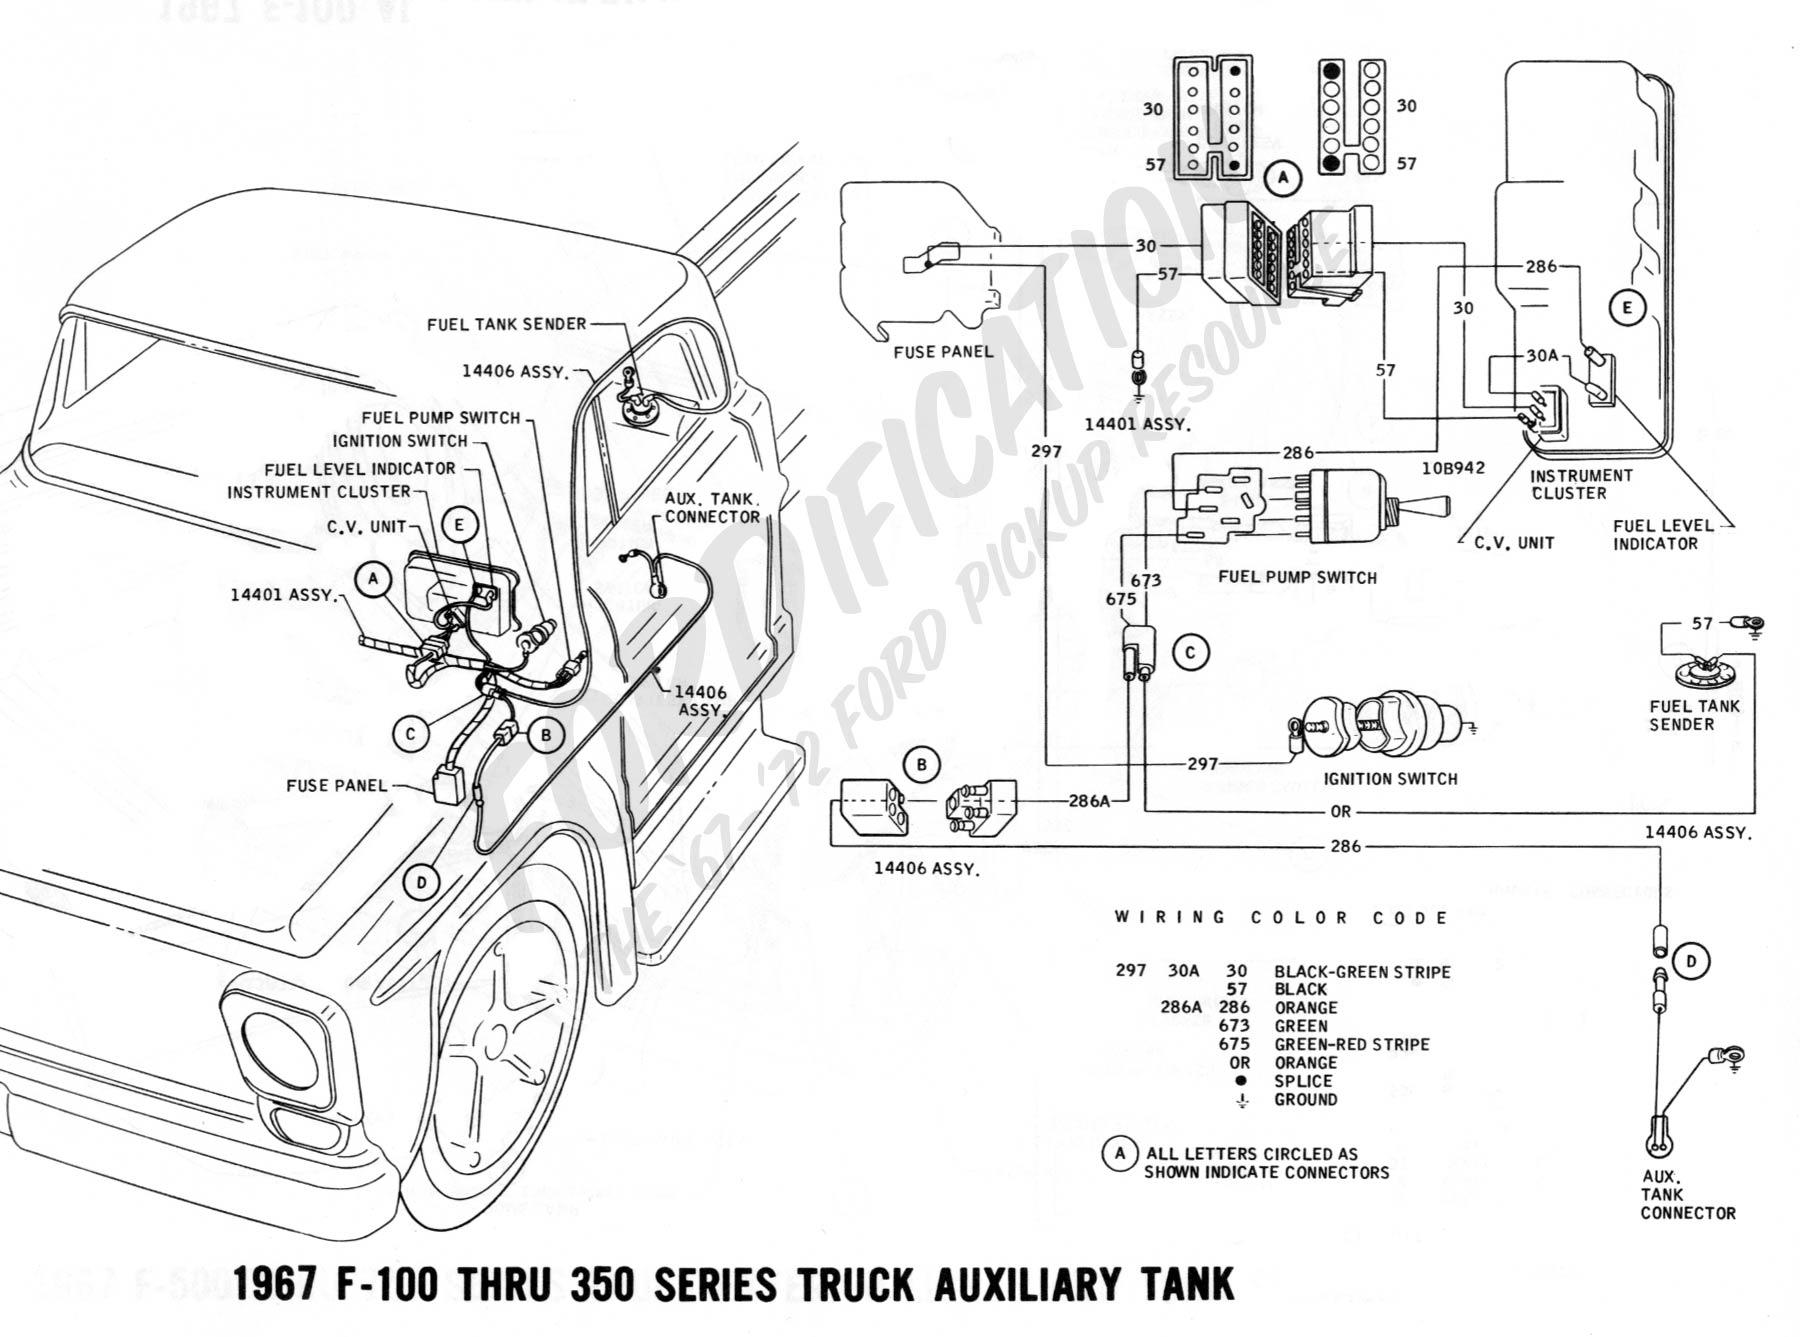 wiring 1967auxtank ford truck technical drawings and schematics section h wiring ford 390 engine wiring diagram at reclaimingppi.co